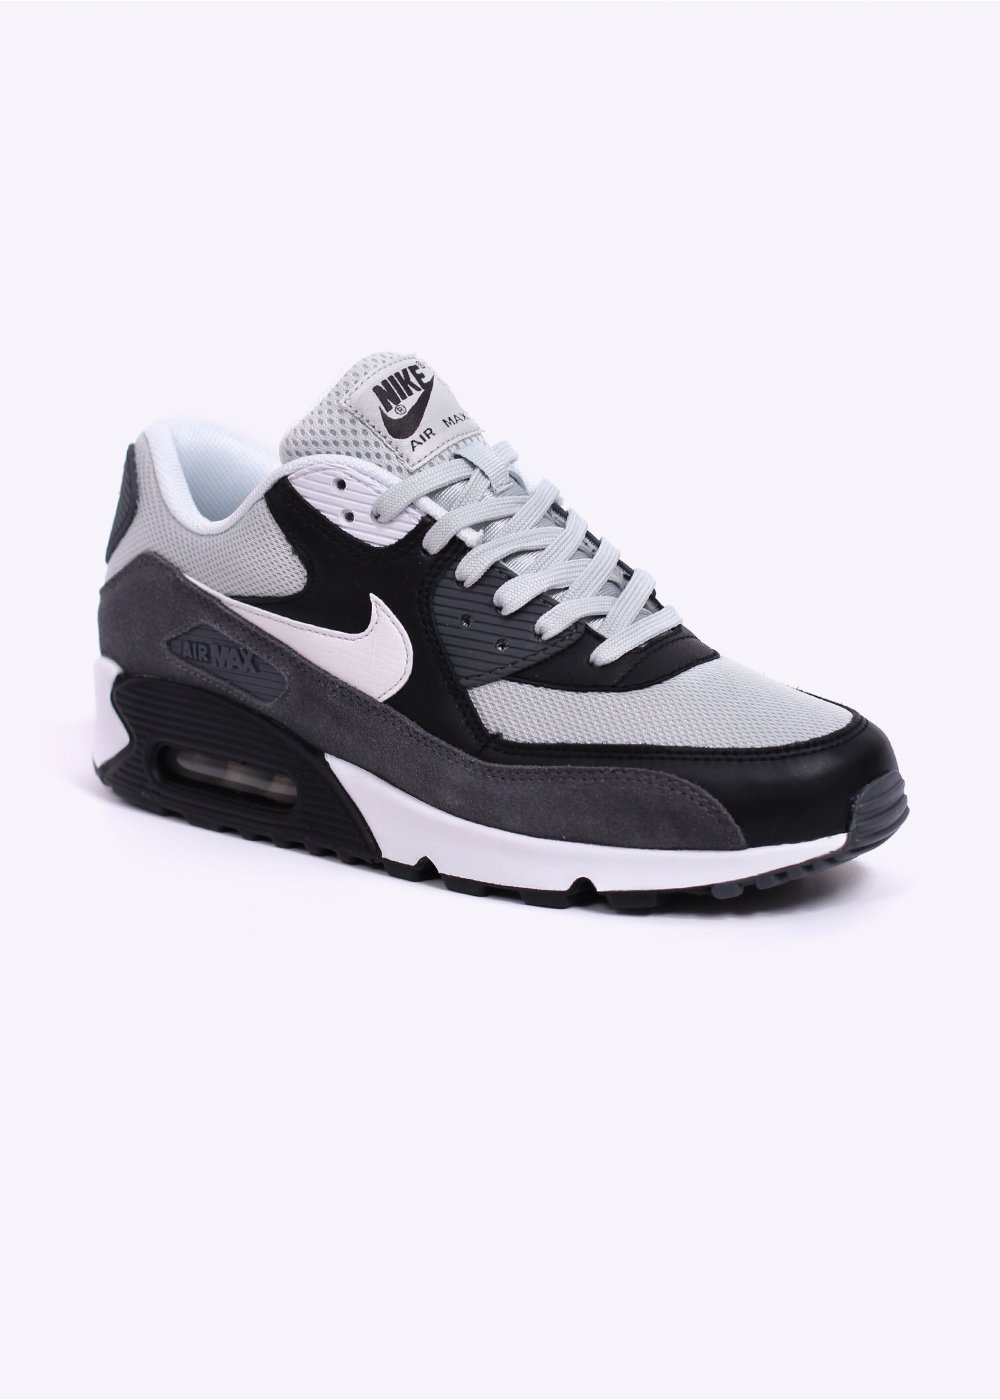 Air Max 90 Essential Grey Mist